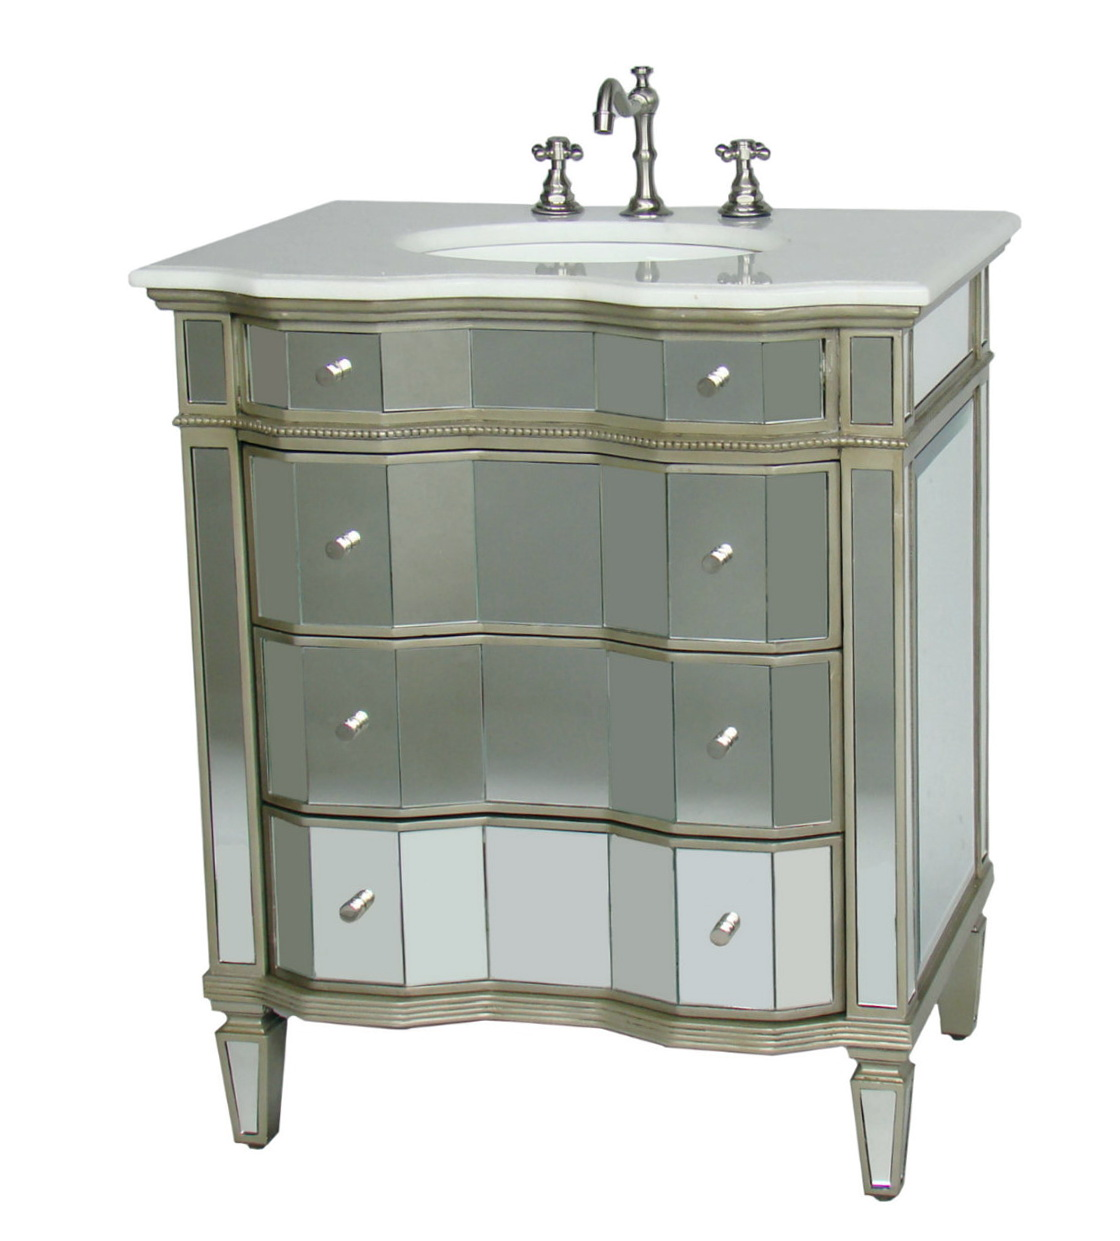 30 Inch Bathroom Vanities For Sale